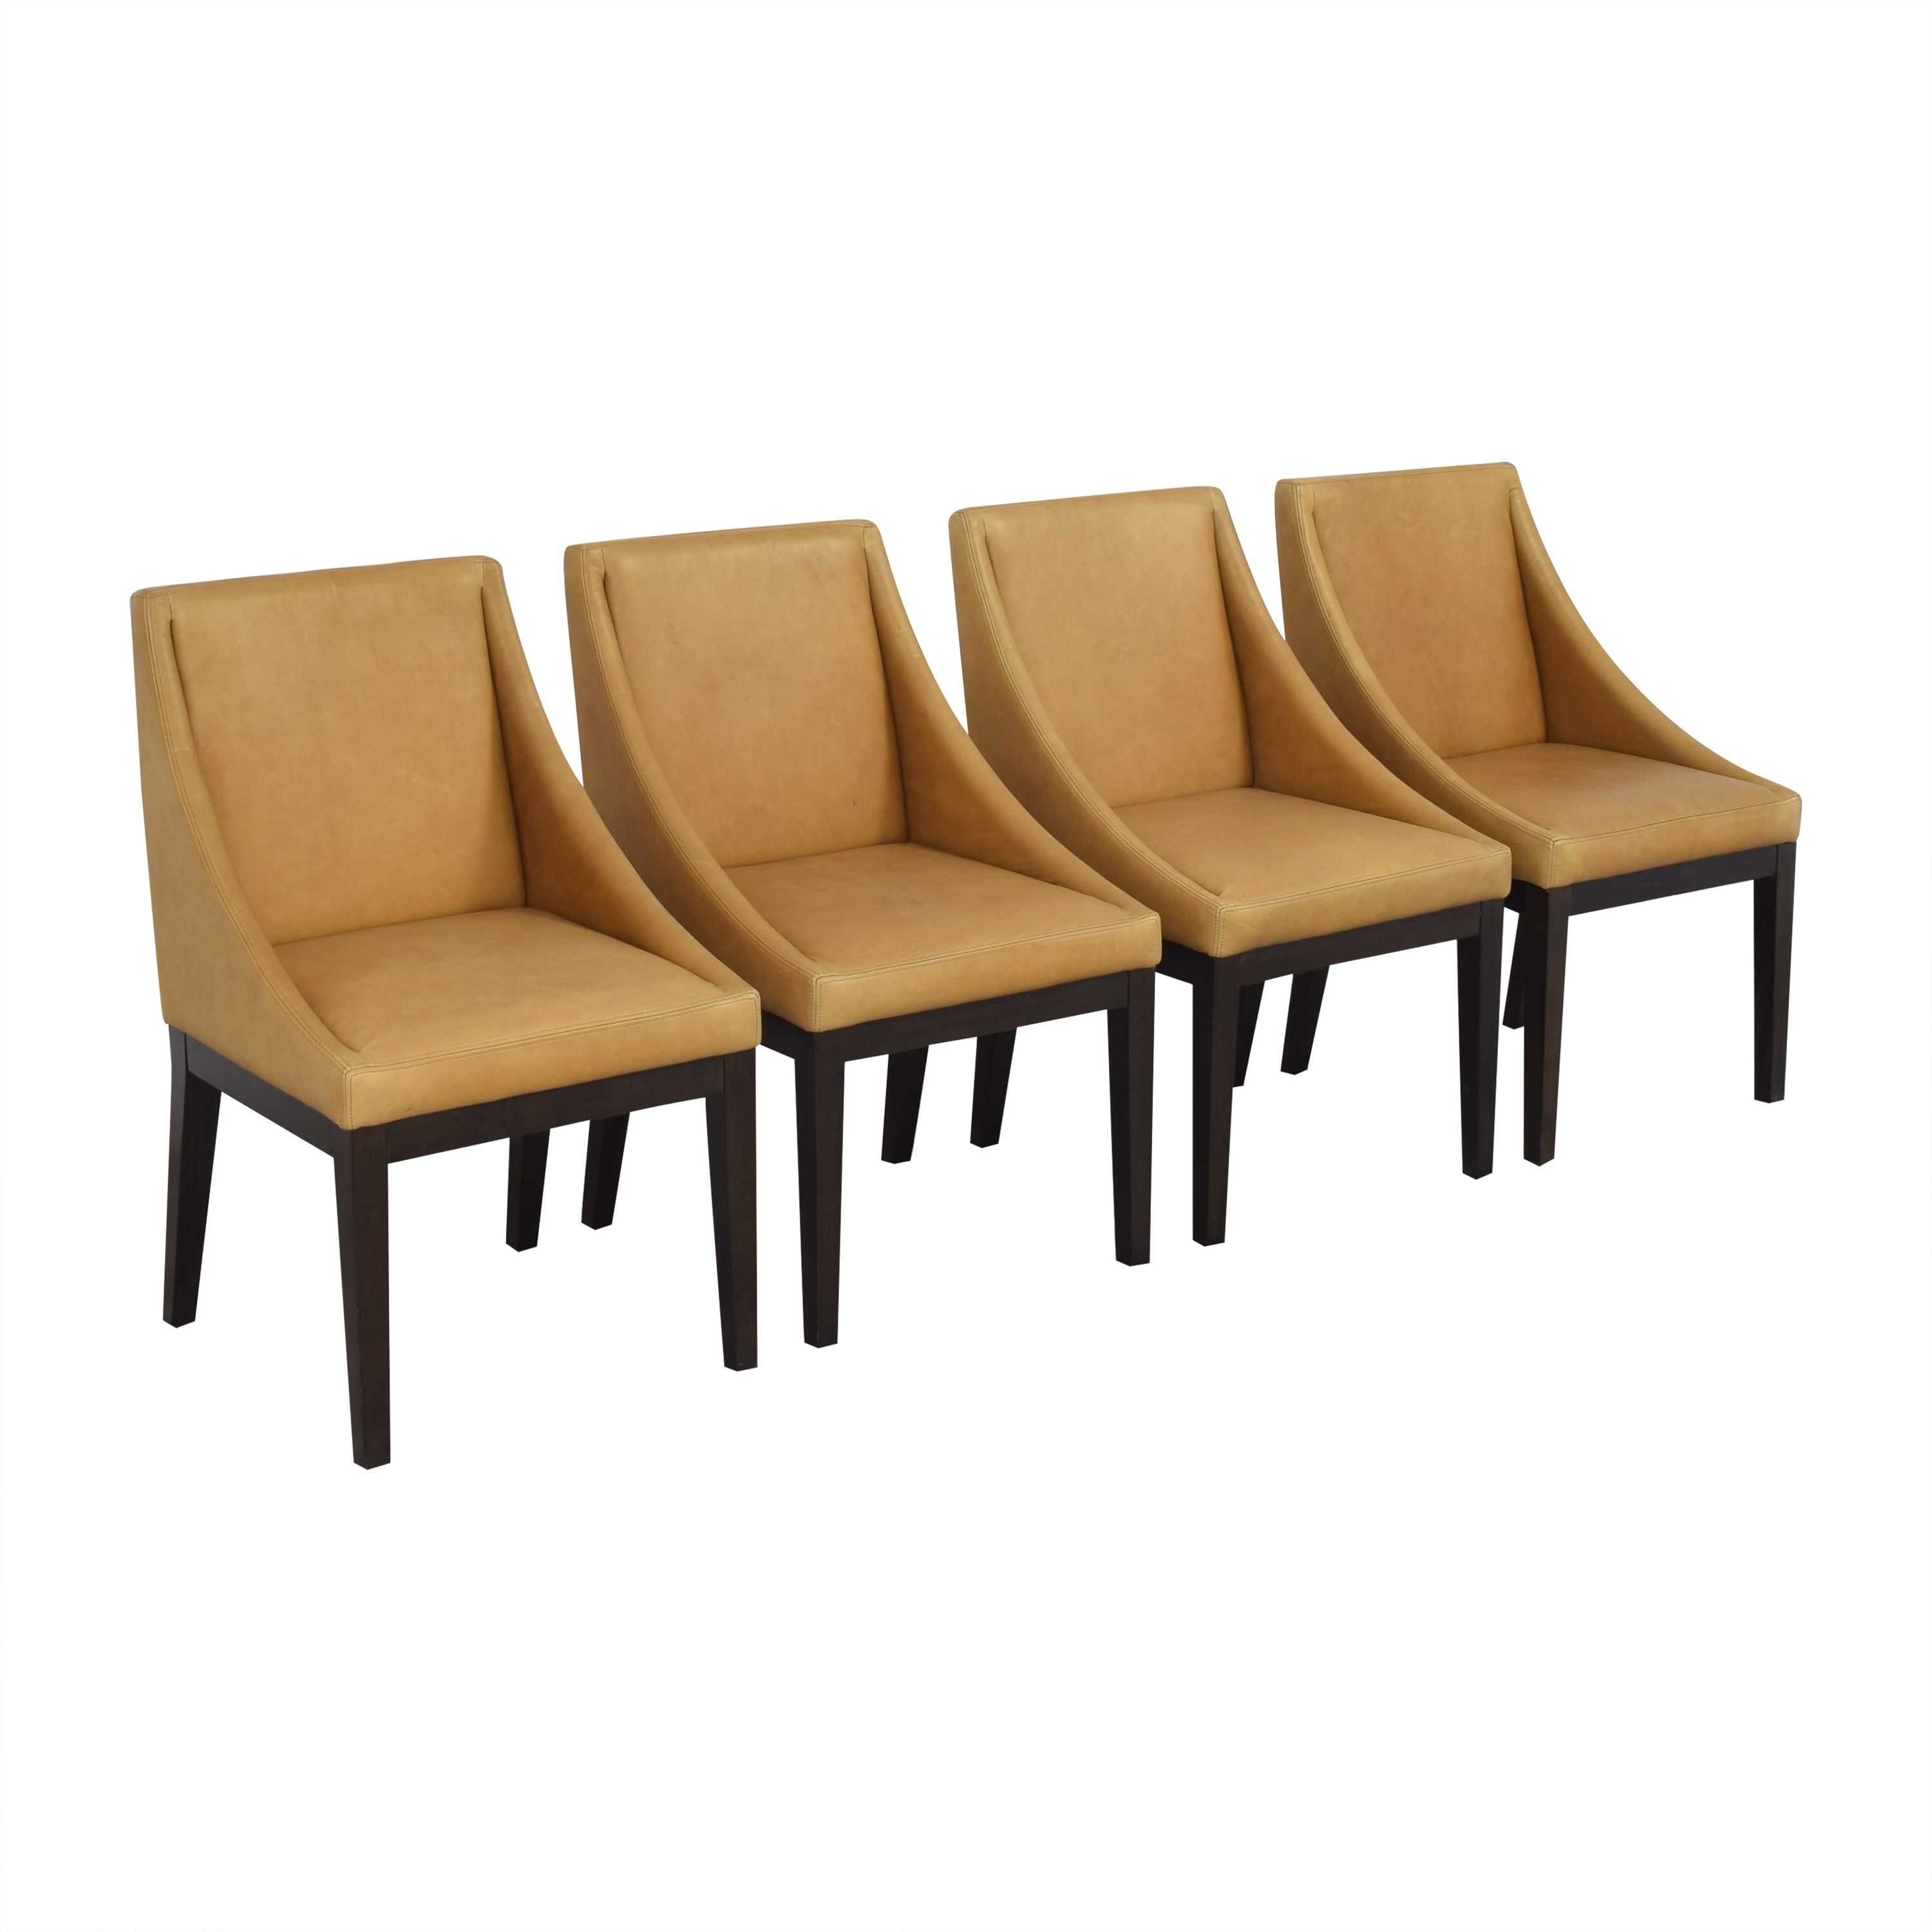 West Elm West Elm Curved Upholstered Chairs ct